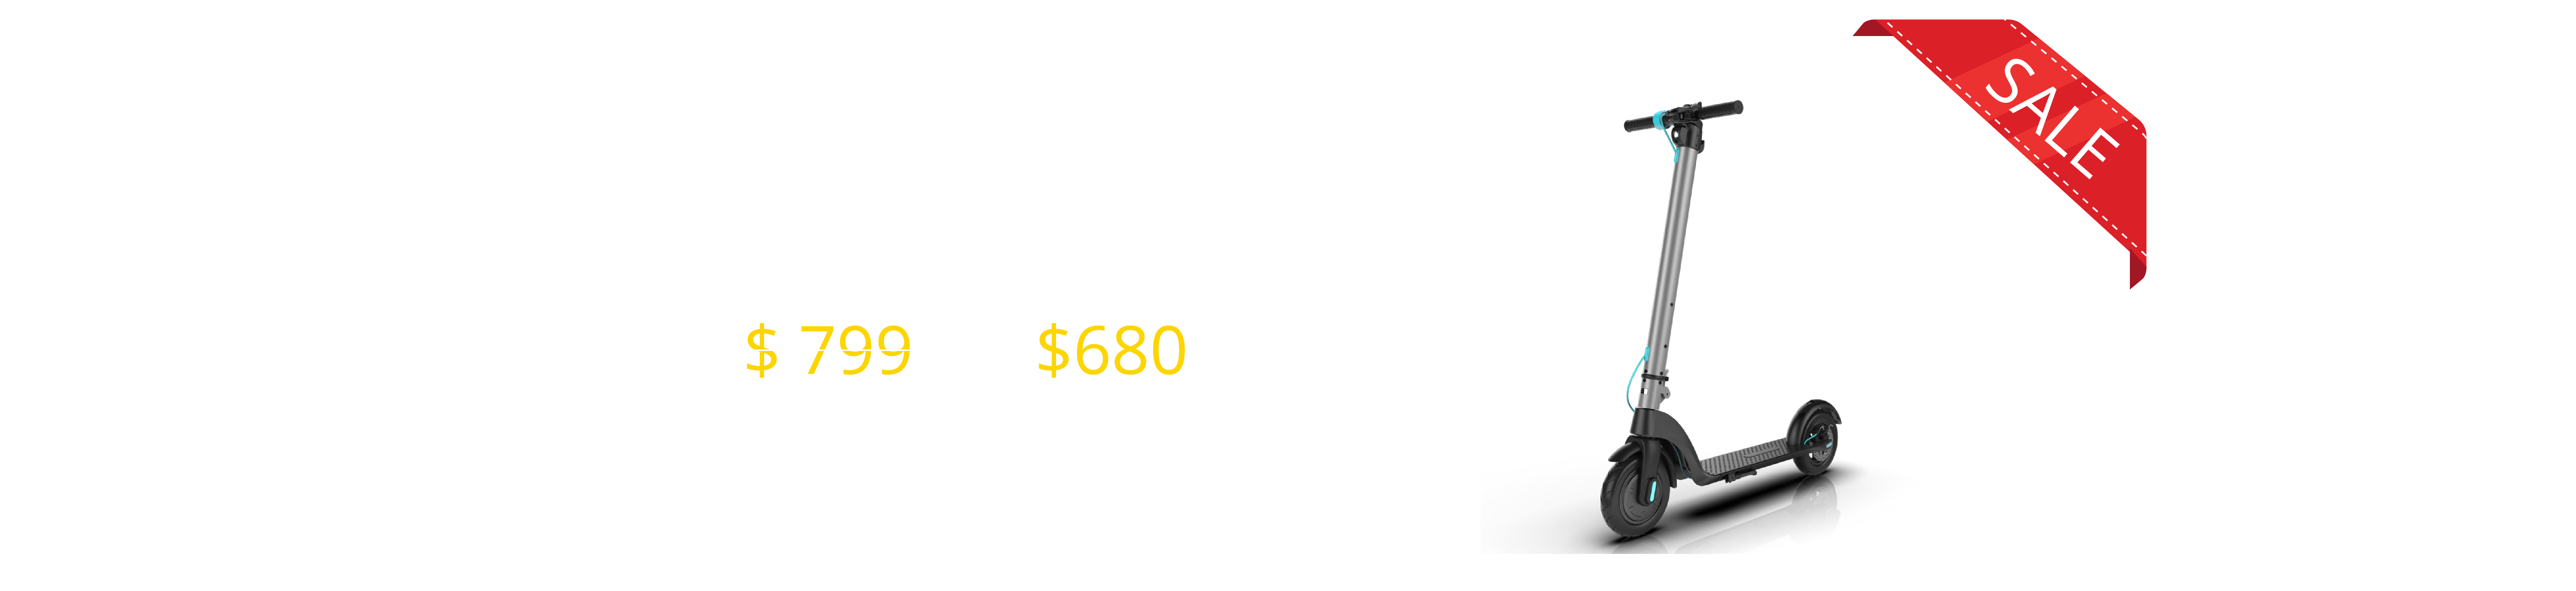 Sunmono-Folding-Electric-Scooter-S1-home-banner-2